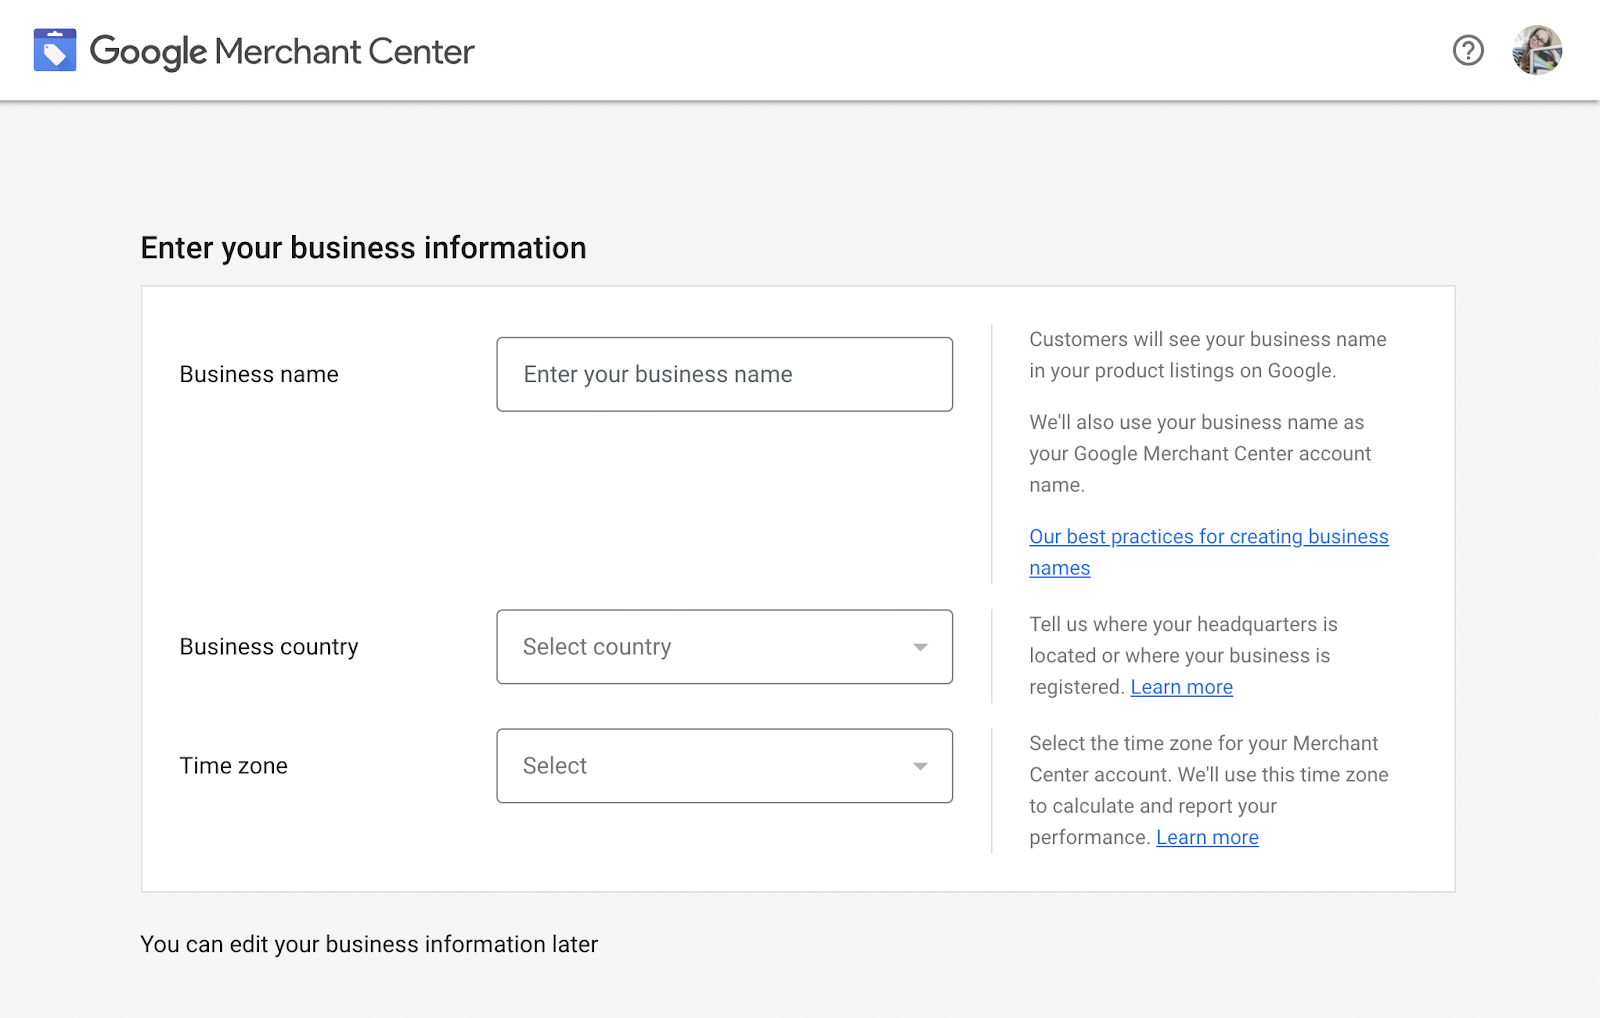 Enter your business name, country, and time zone to get started with GMC